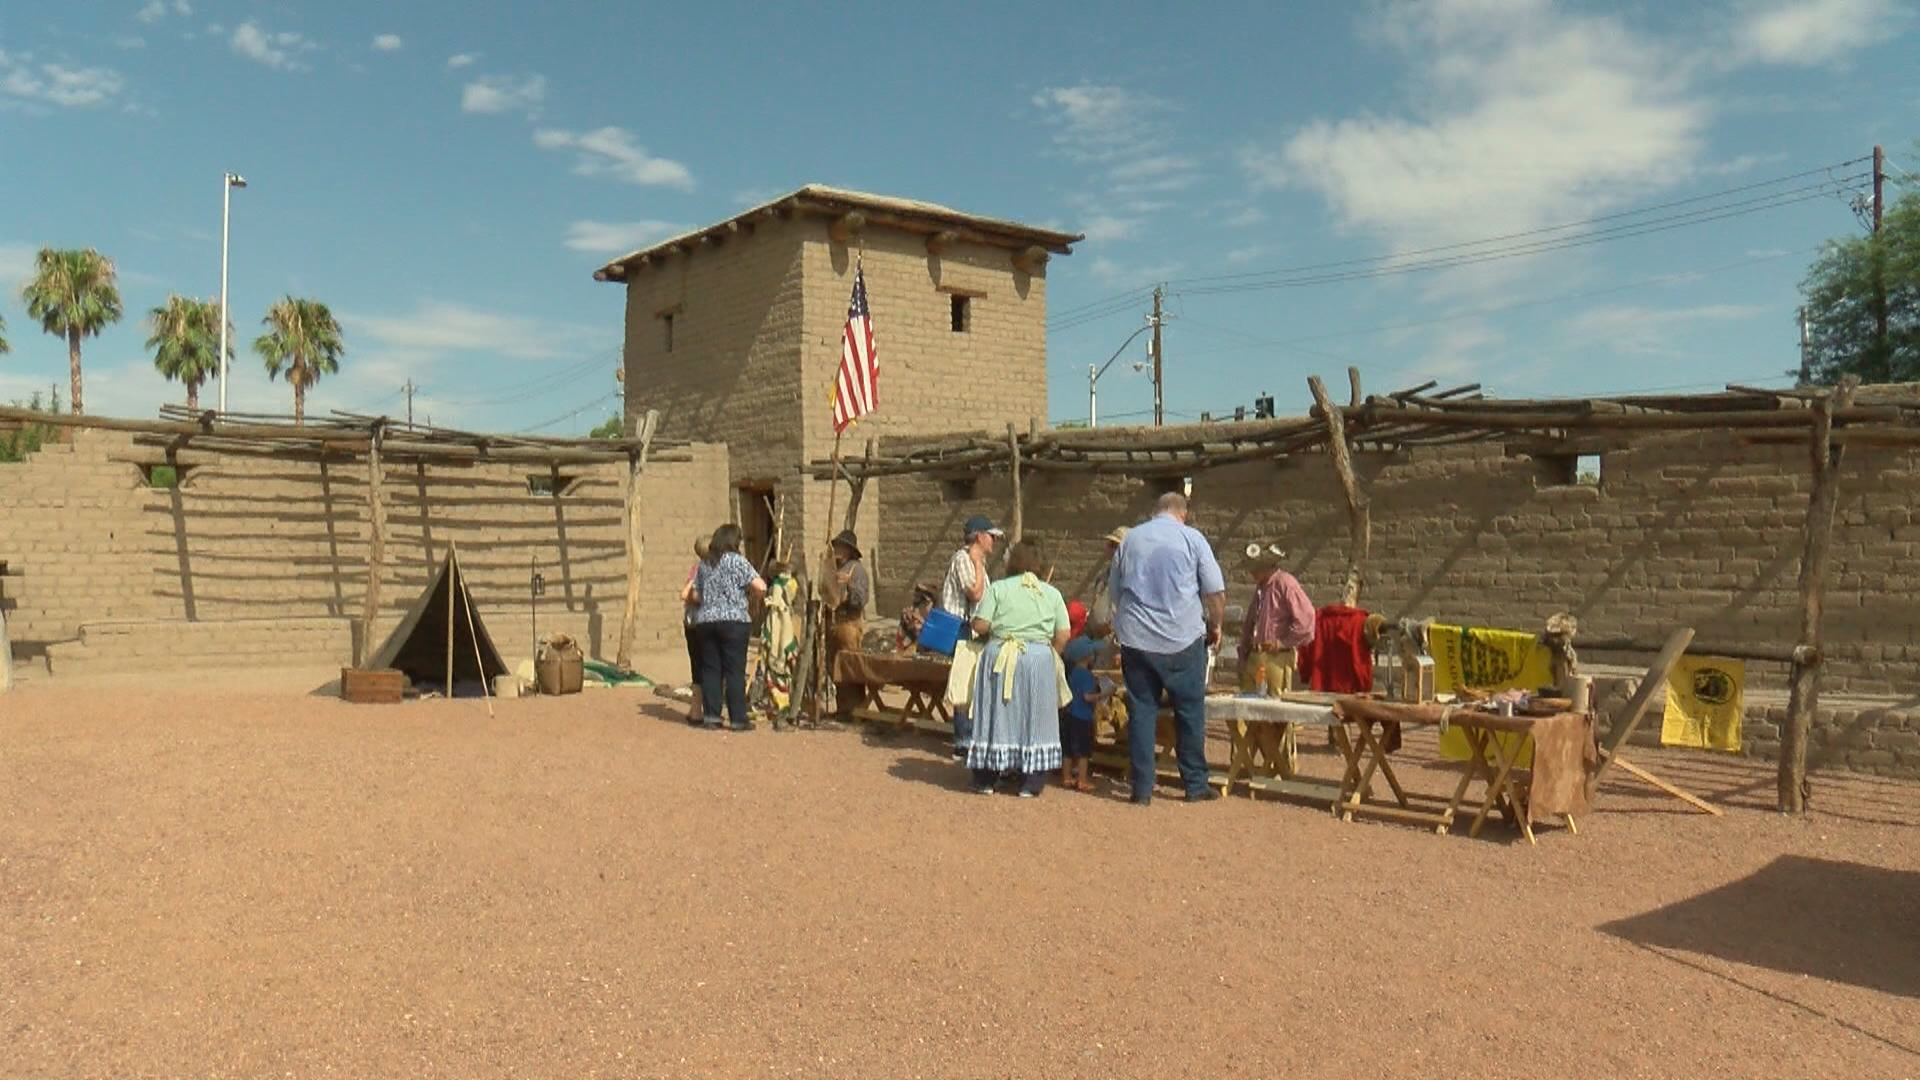 People take part in the Pioneer Day celebration Saturday, July 22, 2017, at The Old Las Vegas Mormon Fort State Historic Park in downtown Las Vegas. (Chad Graves/KSNV)